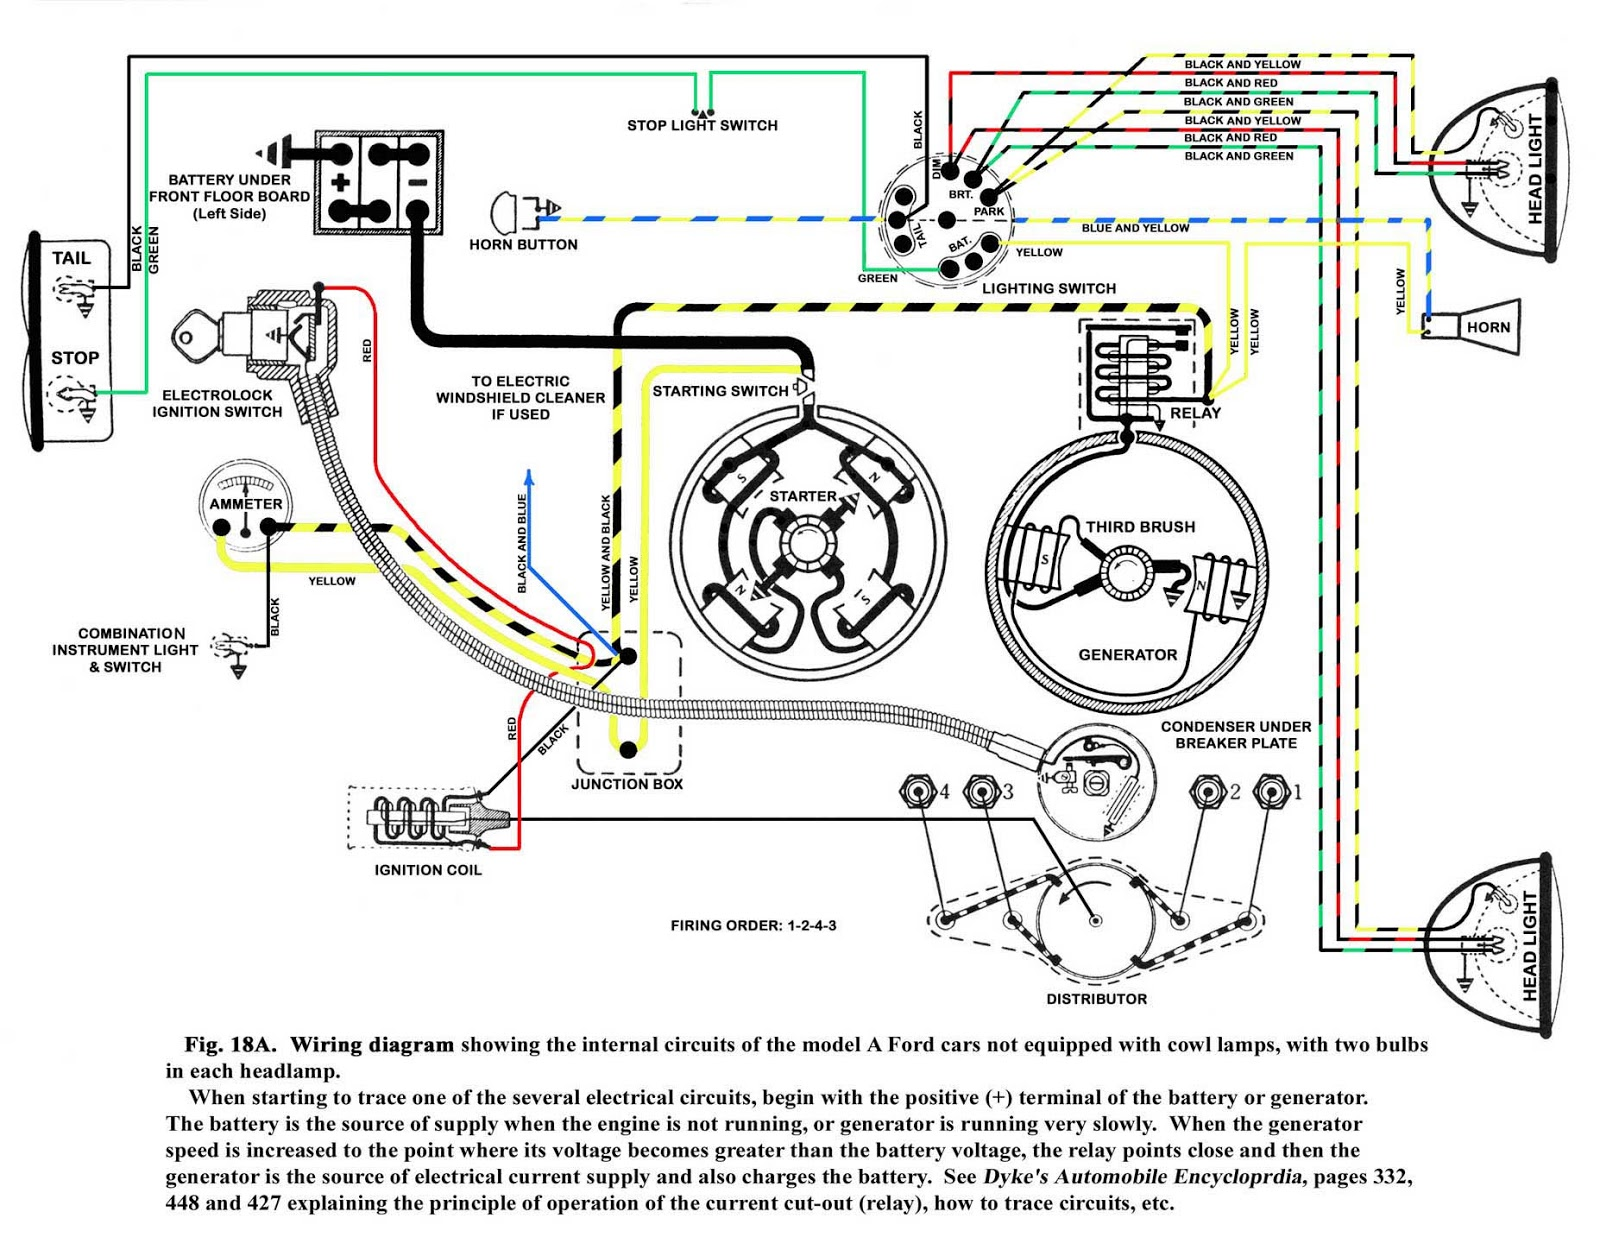 1940 Ford Wiring Diagram from 3.bp.blogspot.com